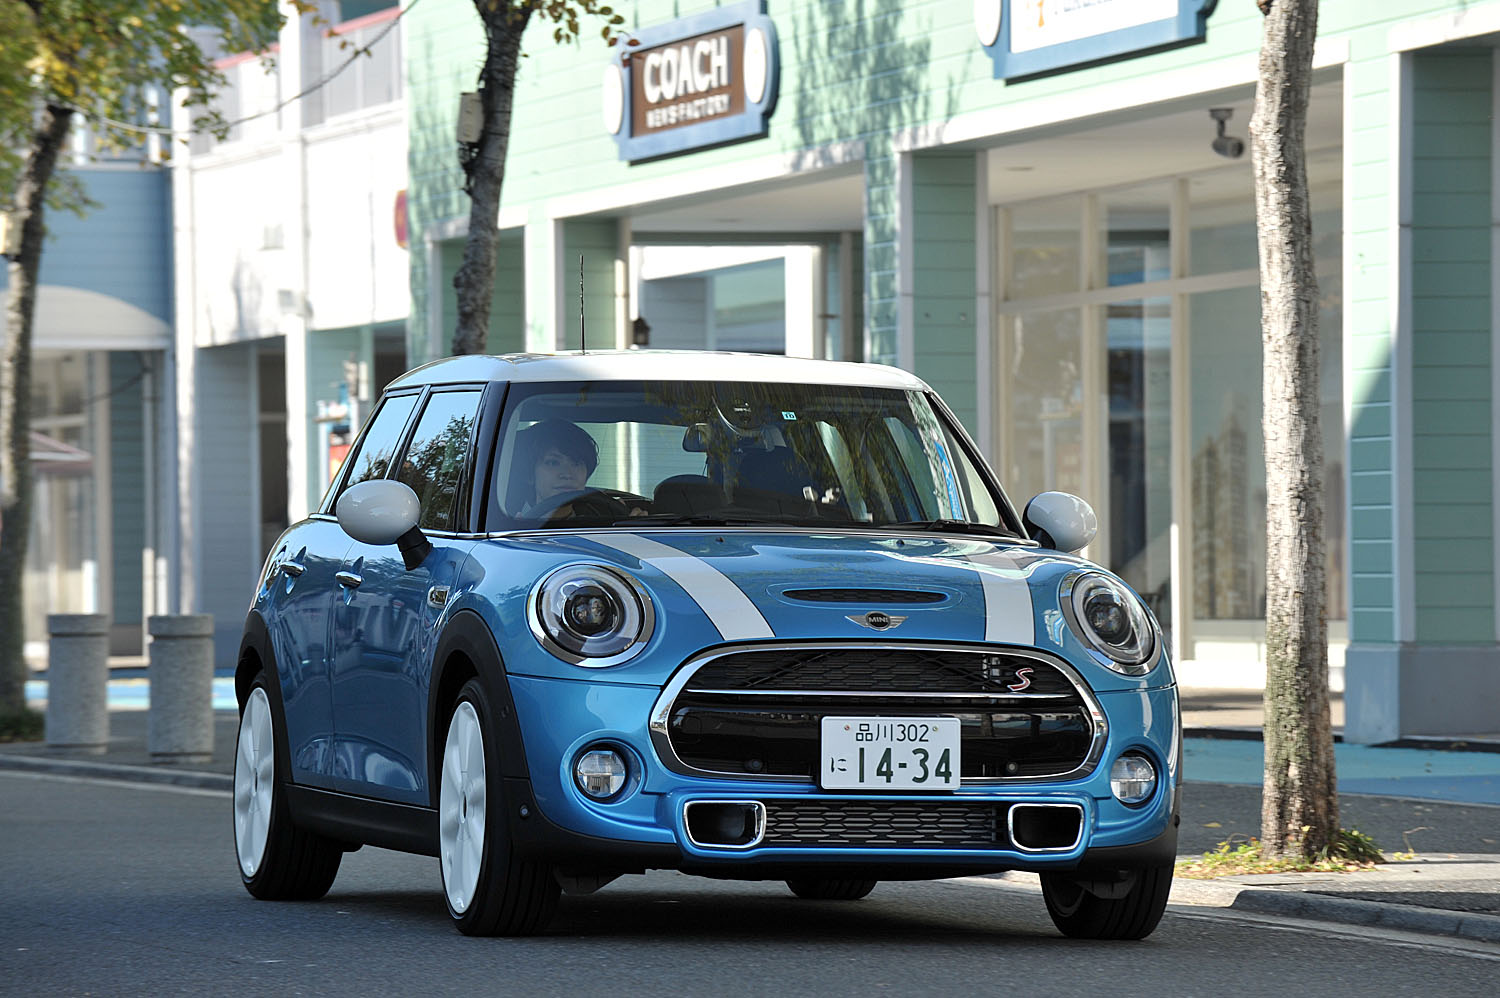 ​THE MINI cooperS/MINI cooper SD crossover